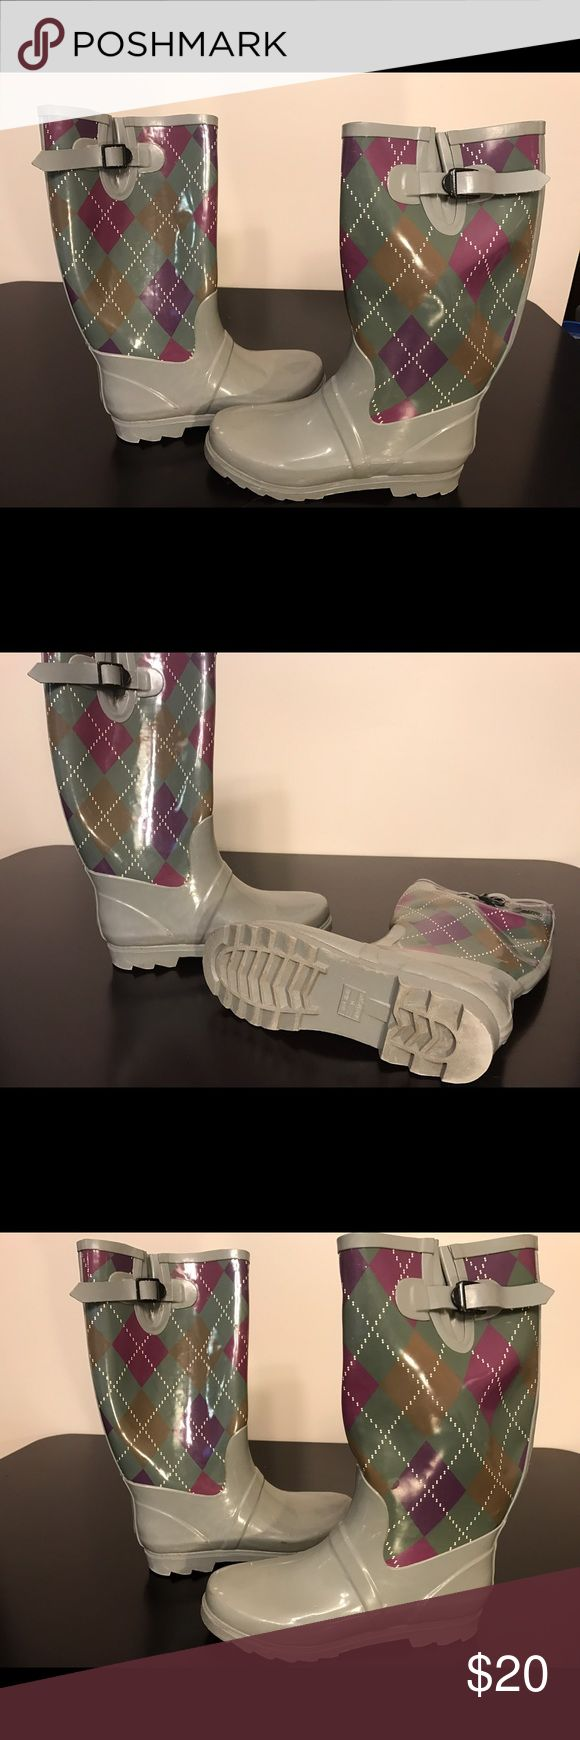 Grey galoshes with pink plaid design Henry Ferrara galoshes. These beauties were worn only a few times when I lived up north for the snow. Now I am down south and never need them. Henry Ferrara Shoes Winter & Rain Boots